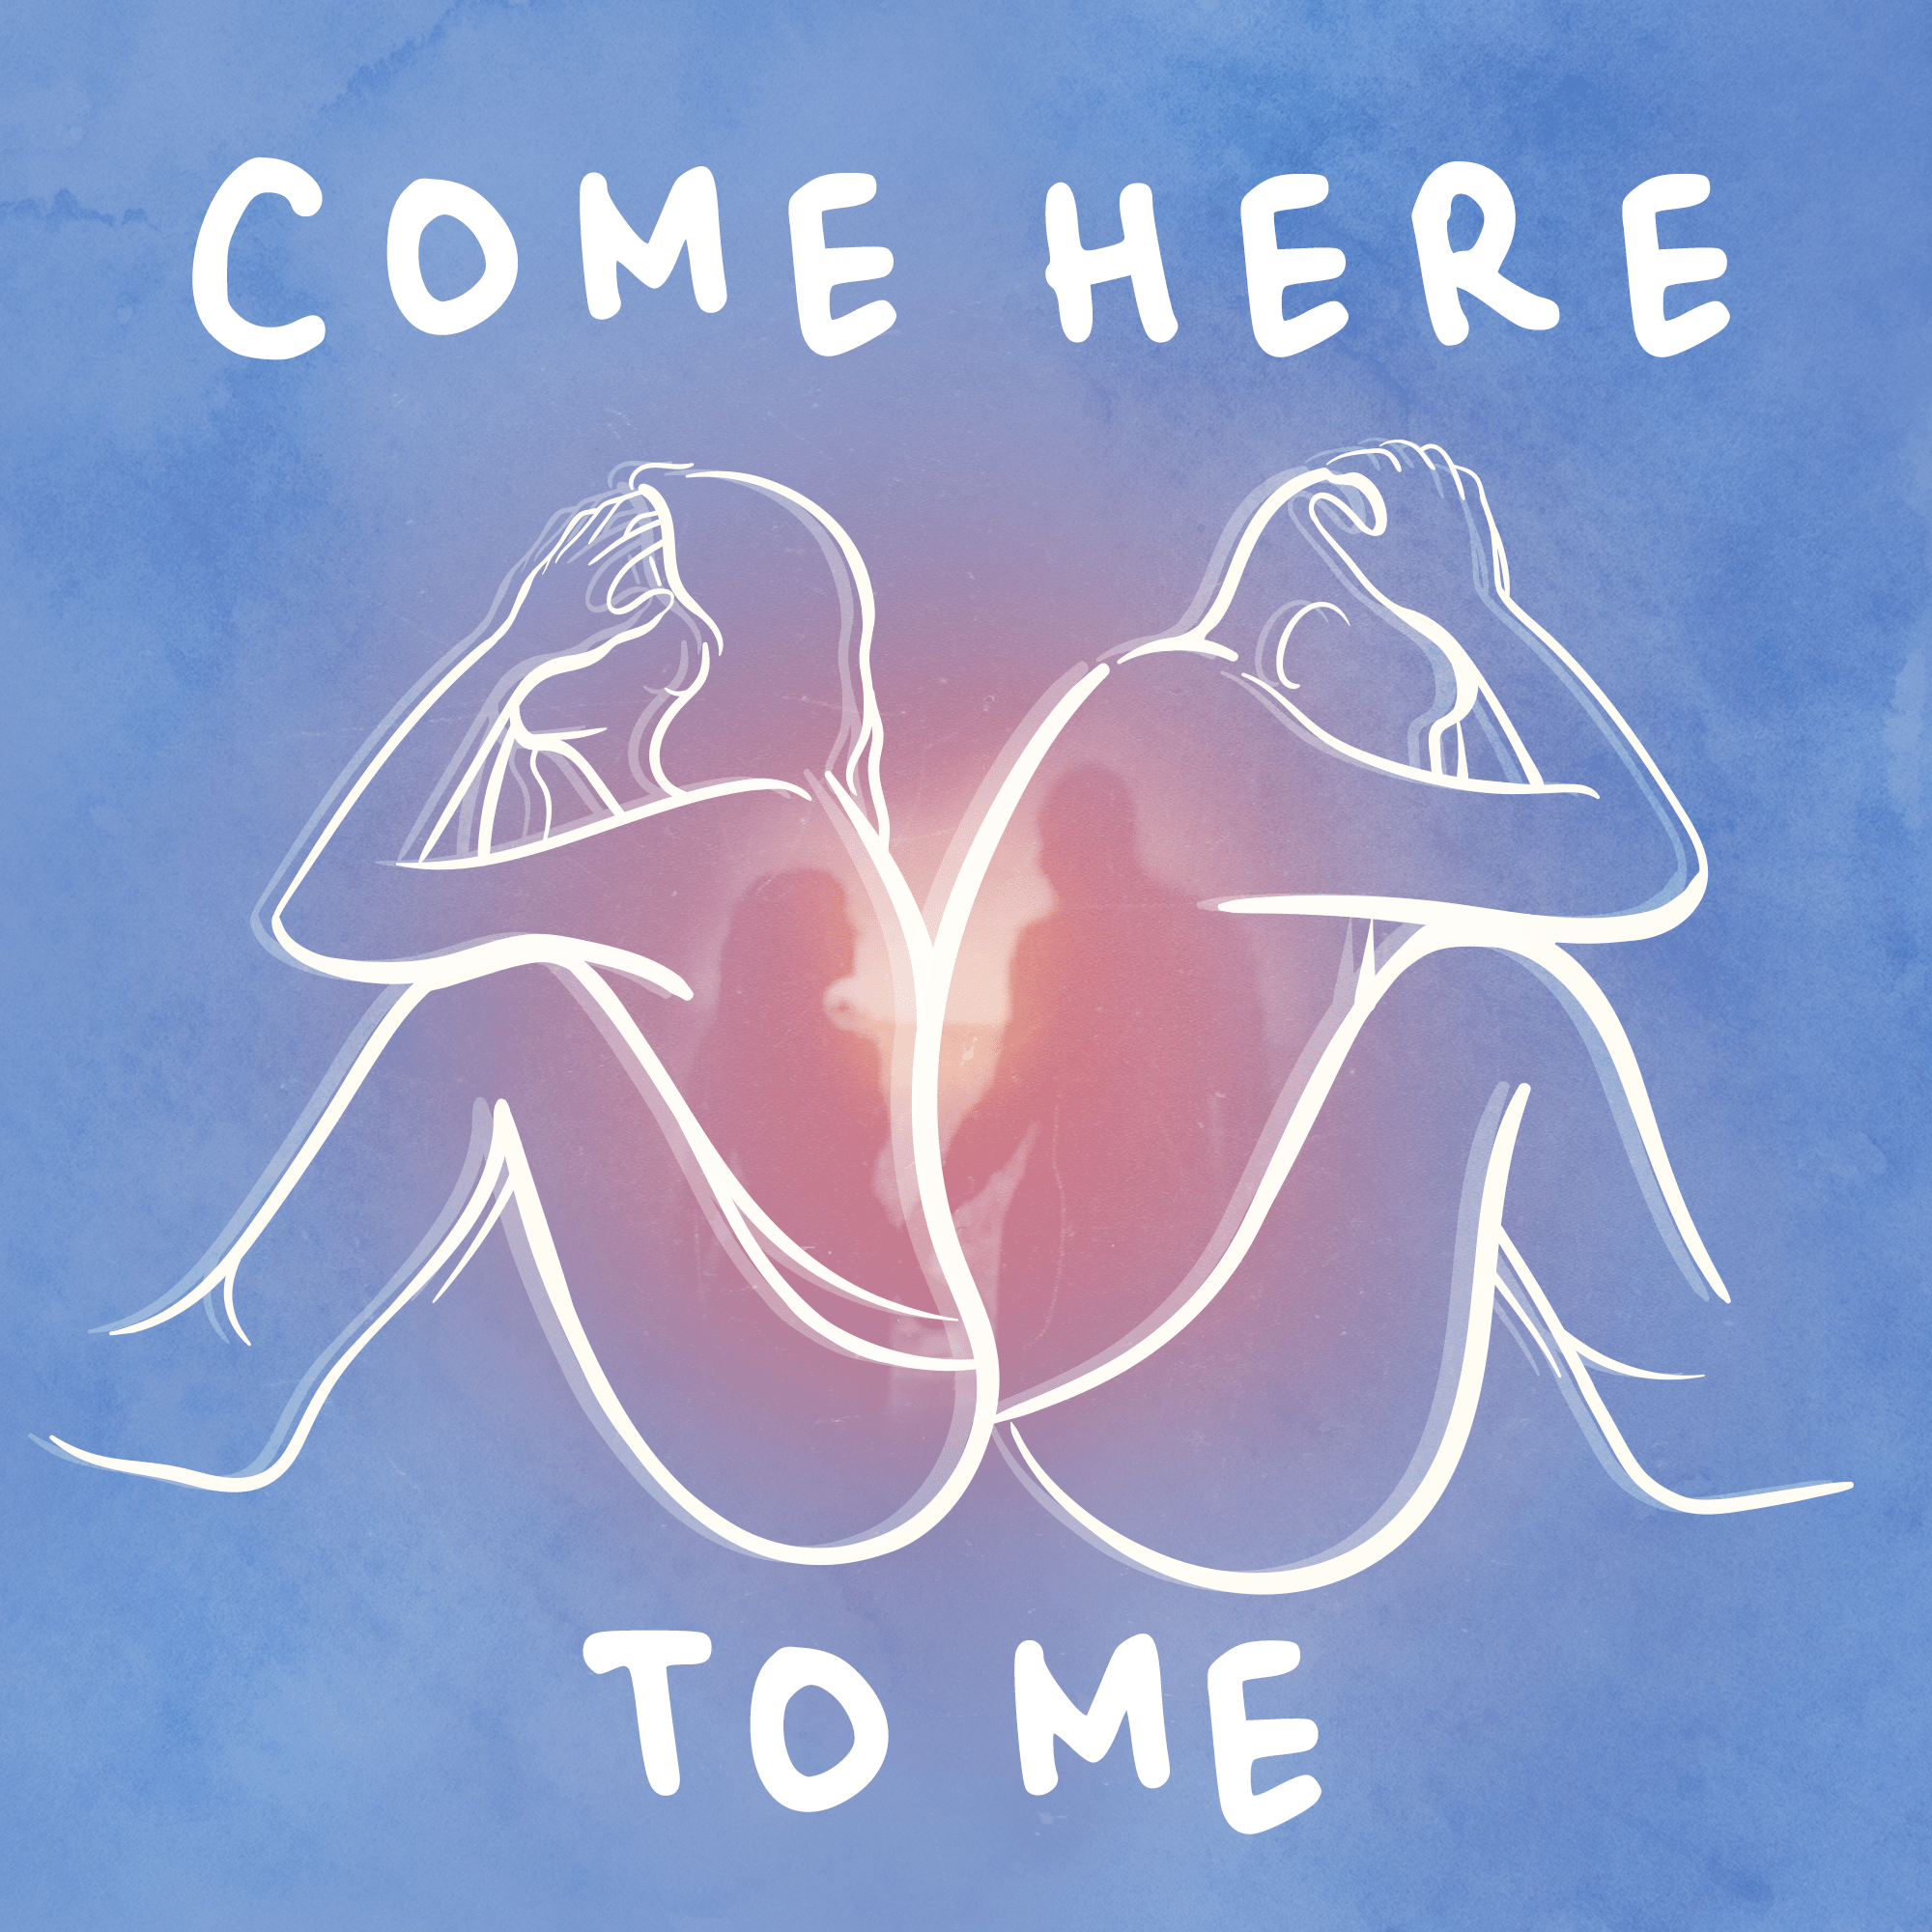 The Come Here To Me podcast logo: the outlines of a distressed couple are sitting back-to-back with a silhouette of the couple holding hands at the center.